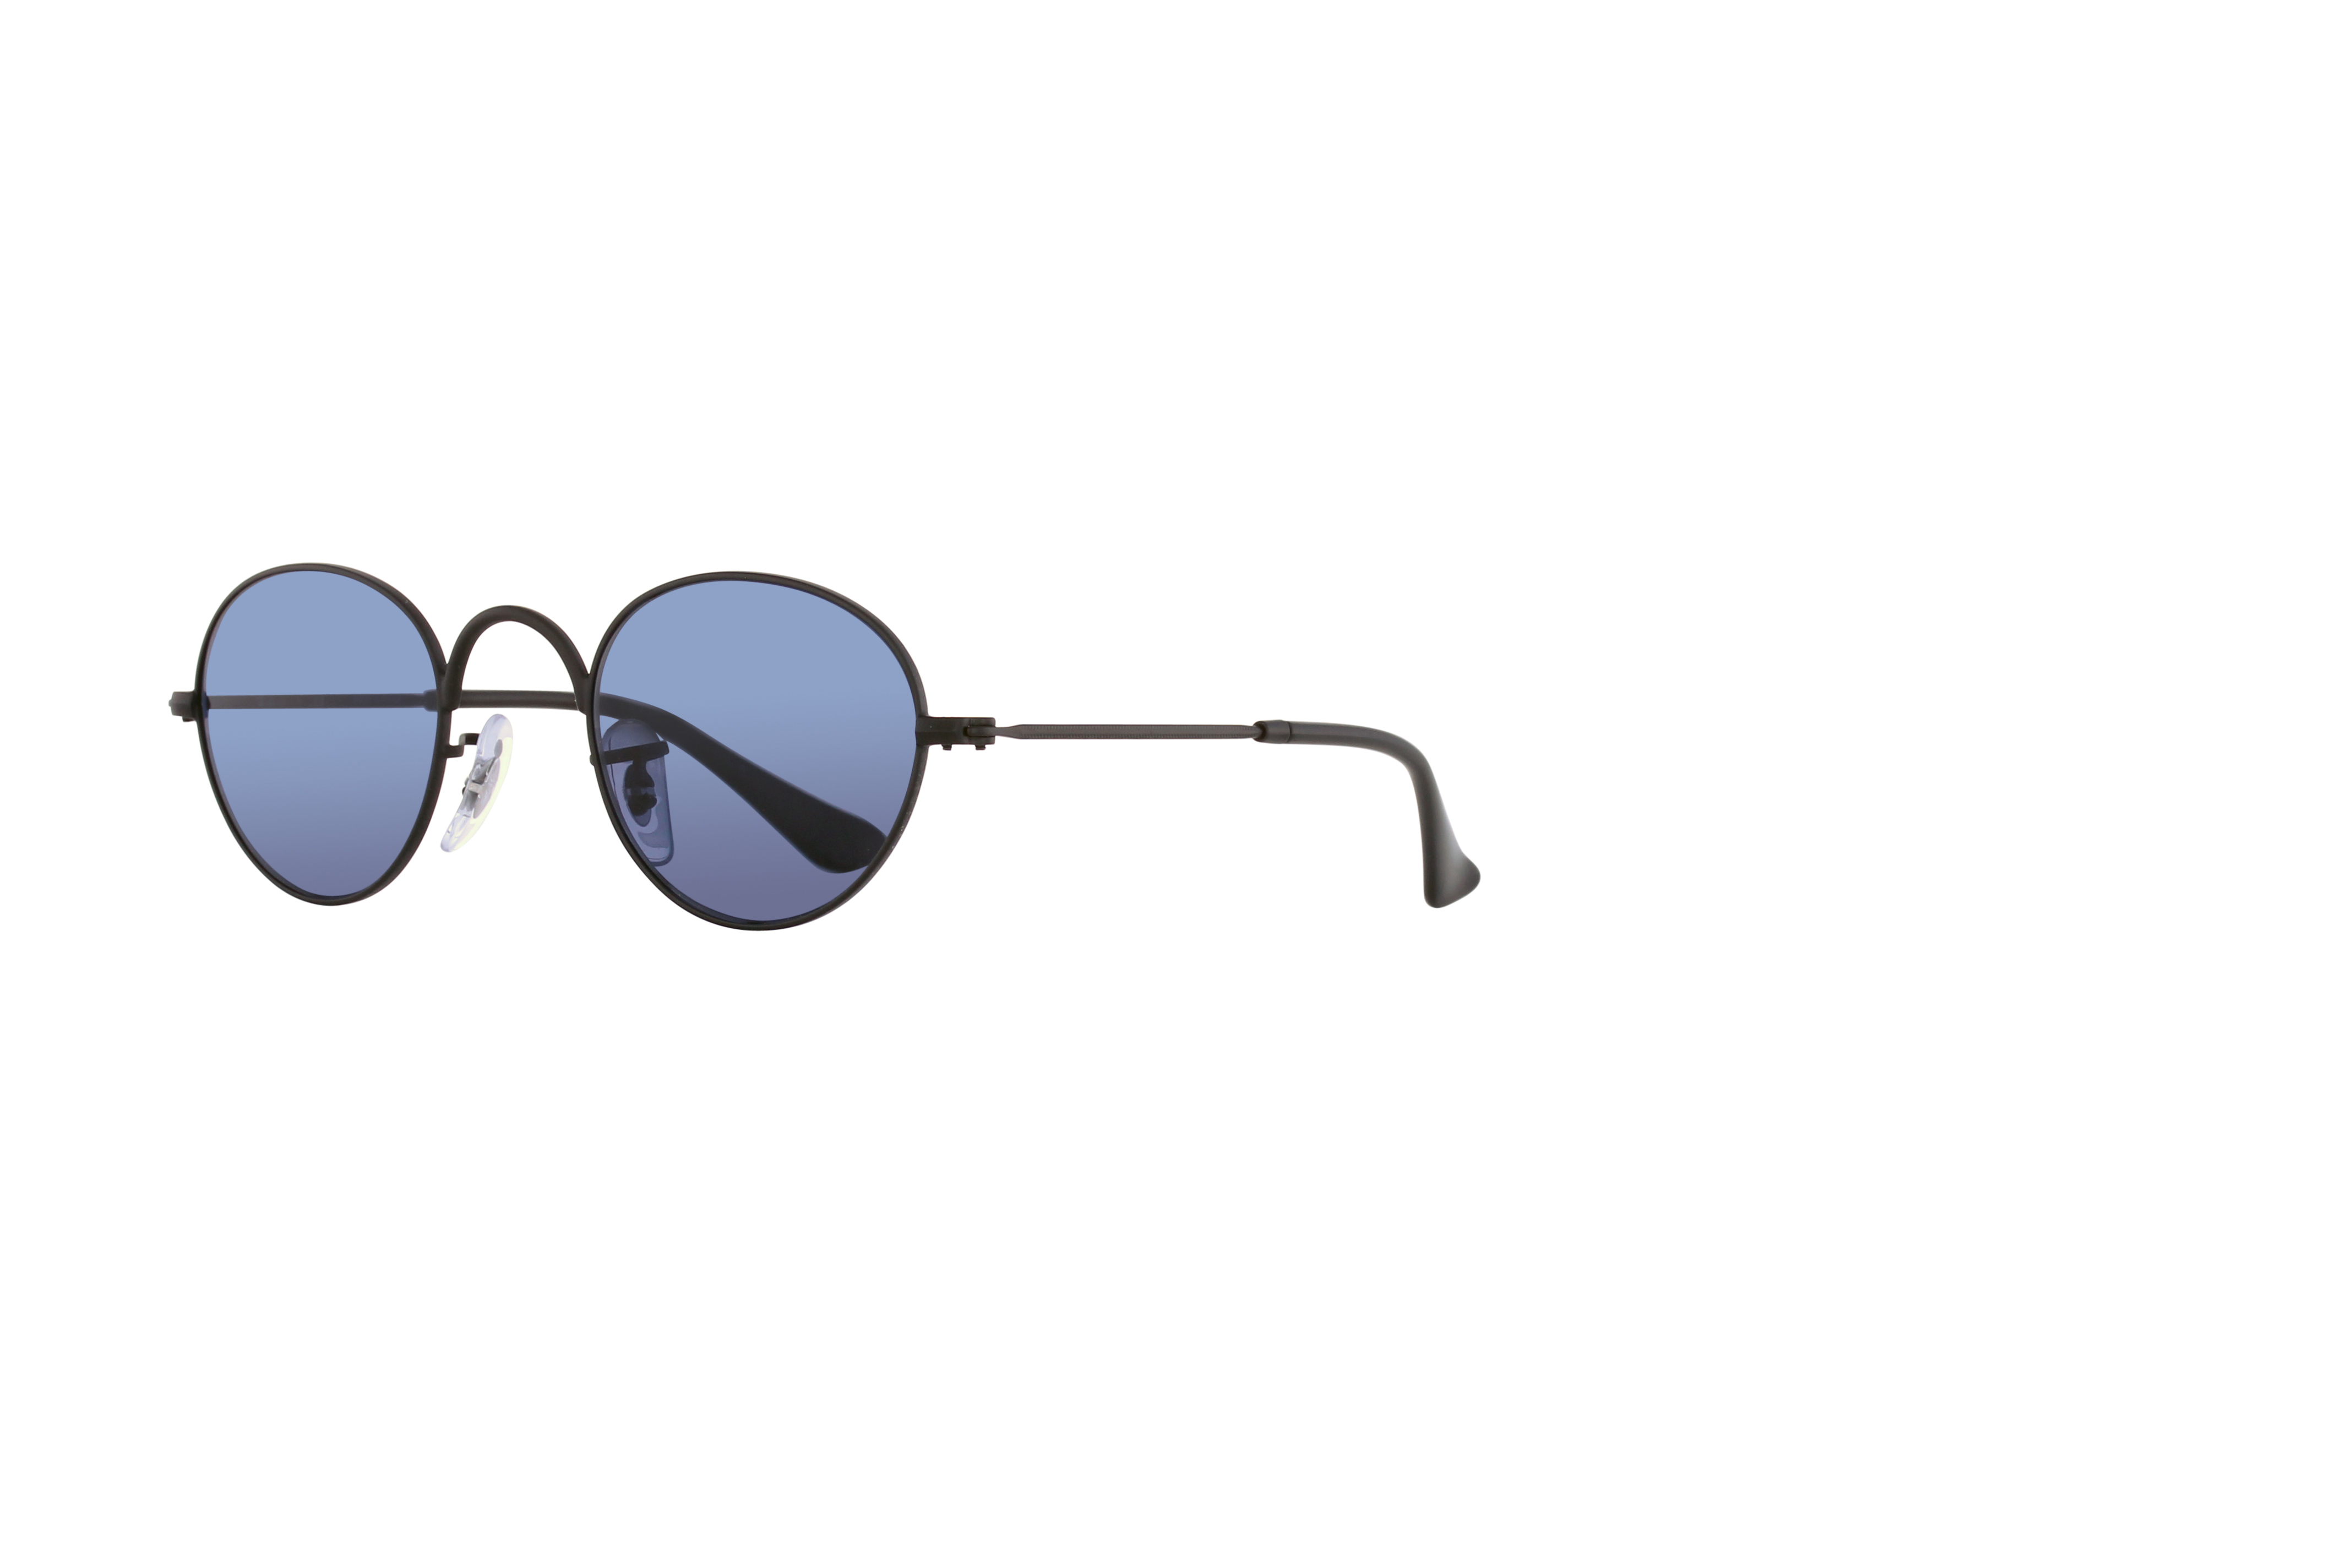 Ray-Ban Youth RJ9537S-S-20180-40-21-120